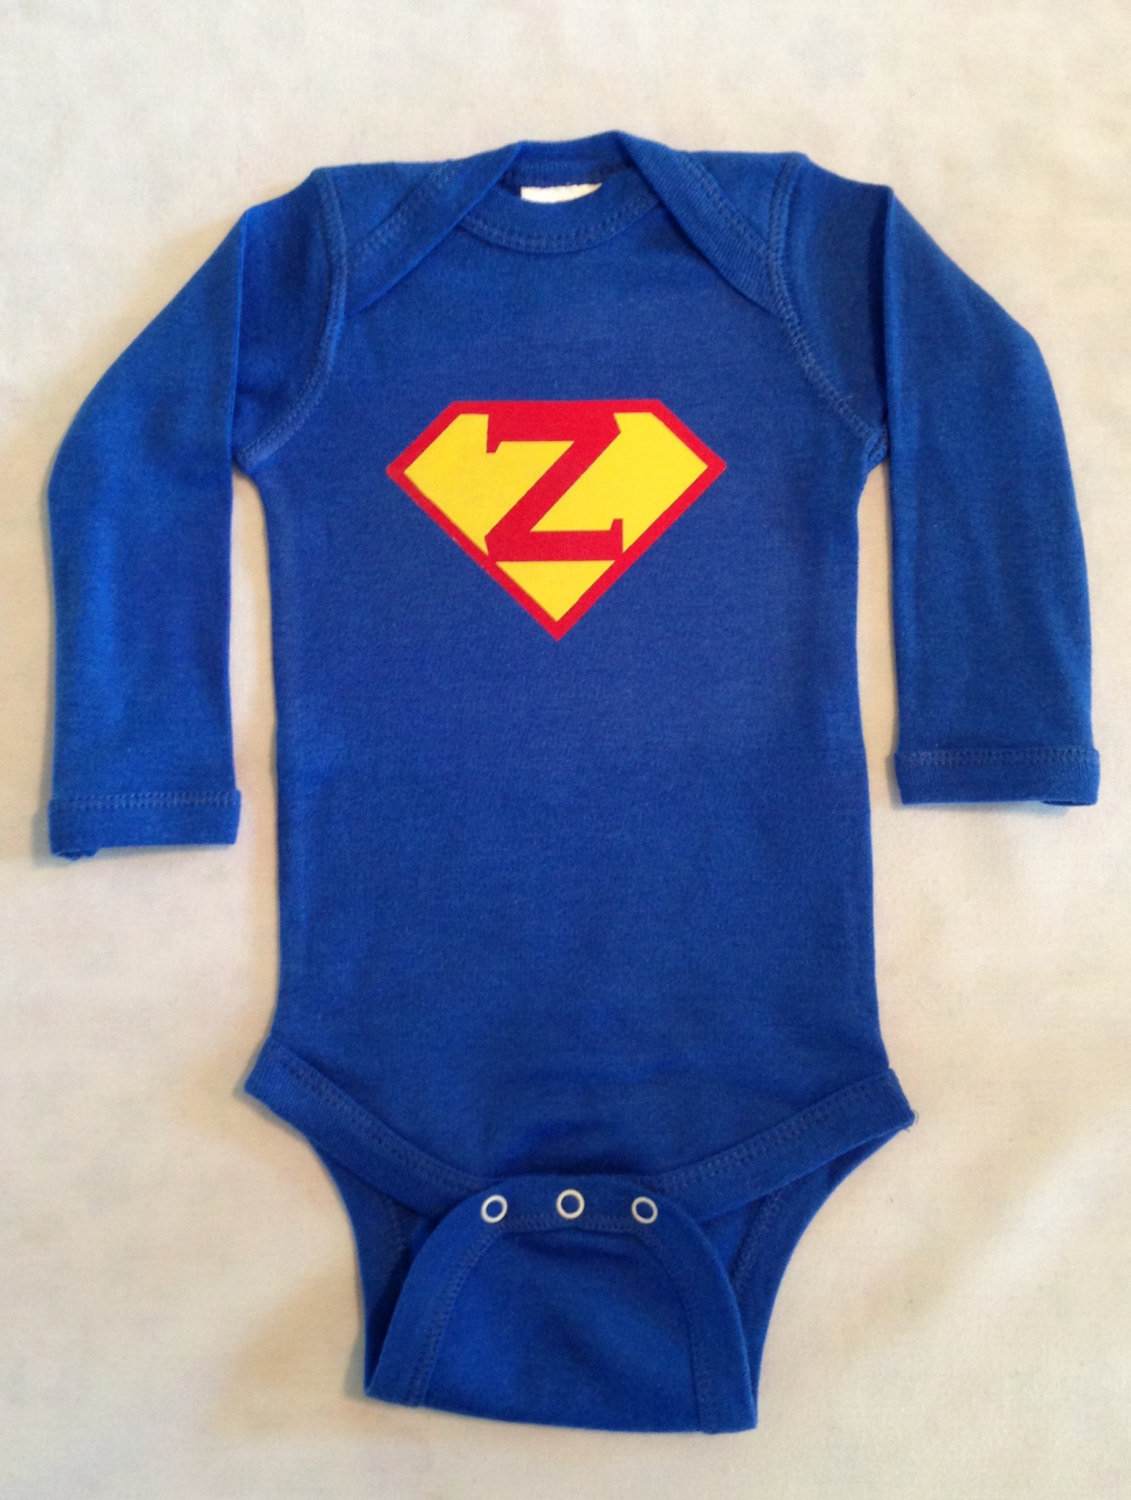 All Departments Auto & Tires Baby Beauty Books Cell Phones Clothing Electronics Food. Gifts & Registry Health Home Home Improvement Household Essentials Jewelry Movies Music Office. Superman Men's T-shirts & Tank Tops See All. Skip to end of links. Clearance $ Superman - Shield Logo Heather T-Shirt.